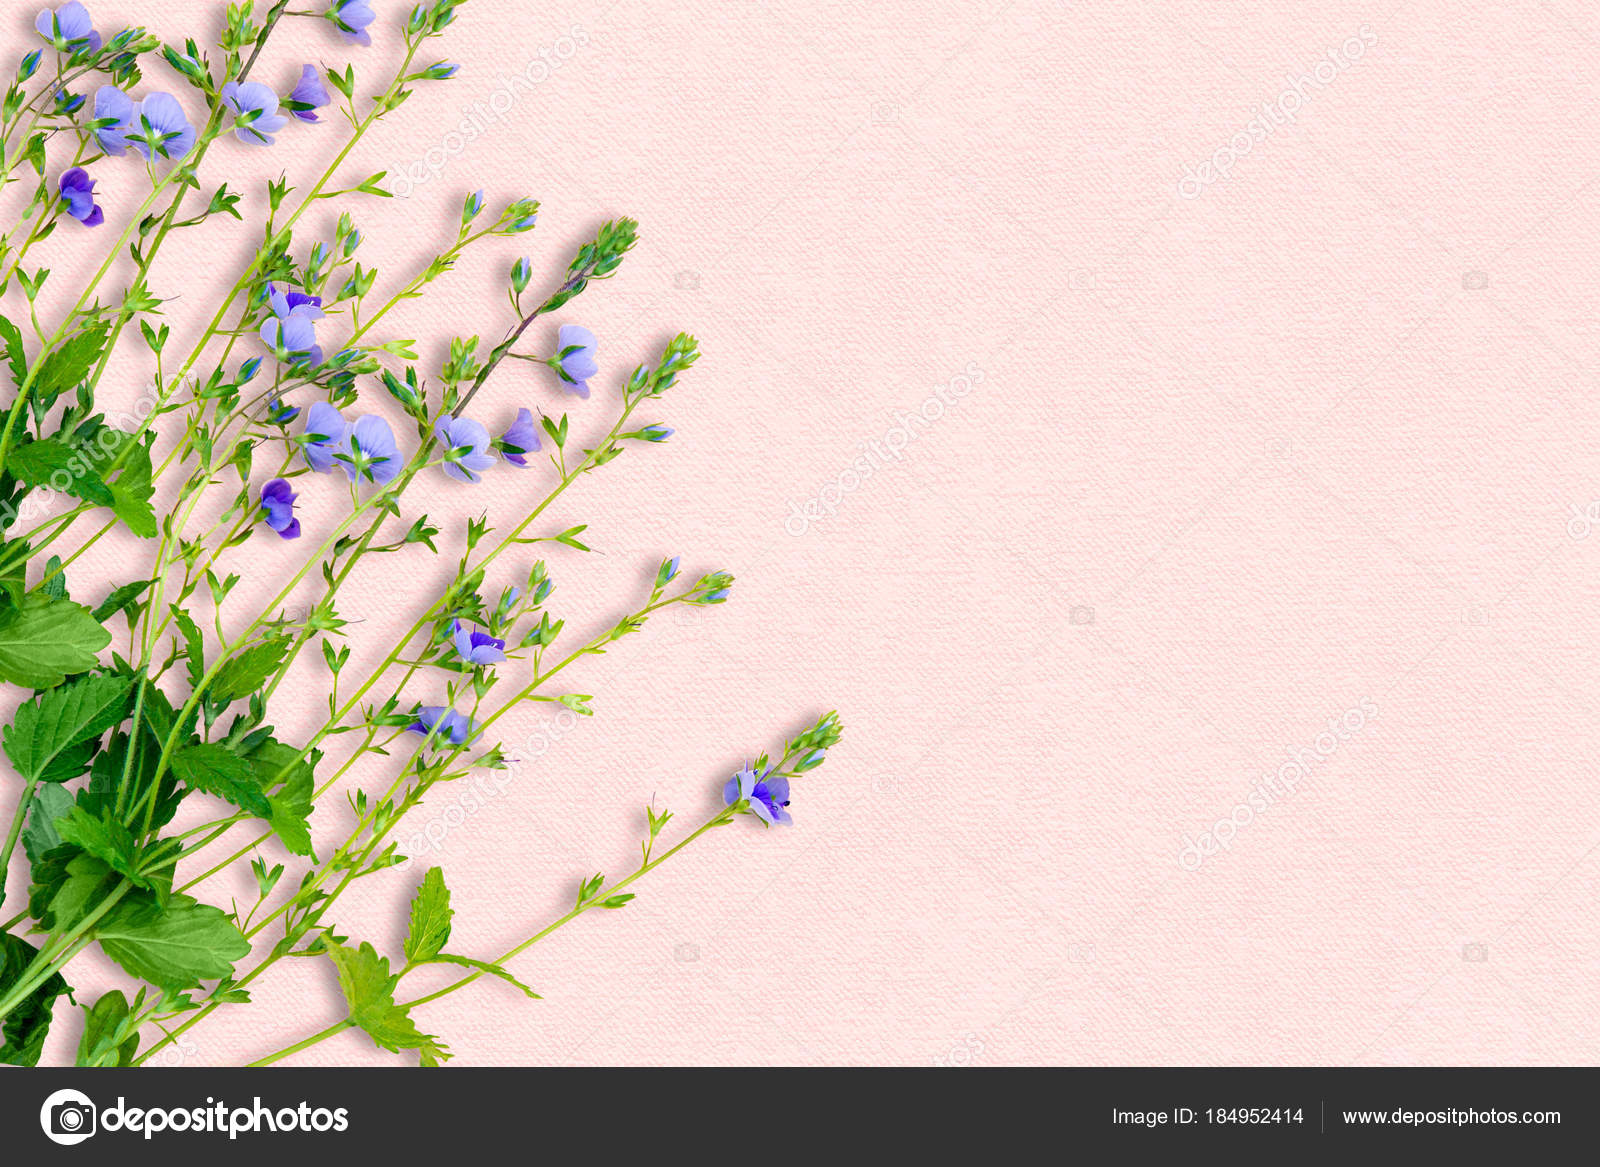 Spring Background With Small Purple Flowers Decoration In Delic